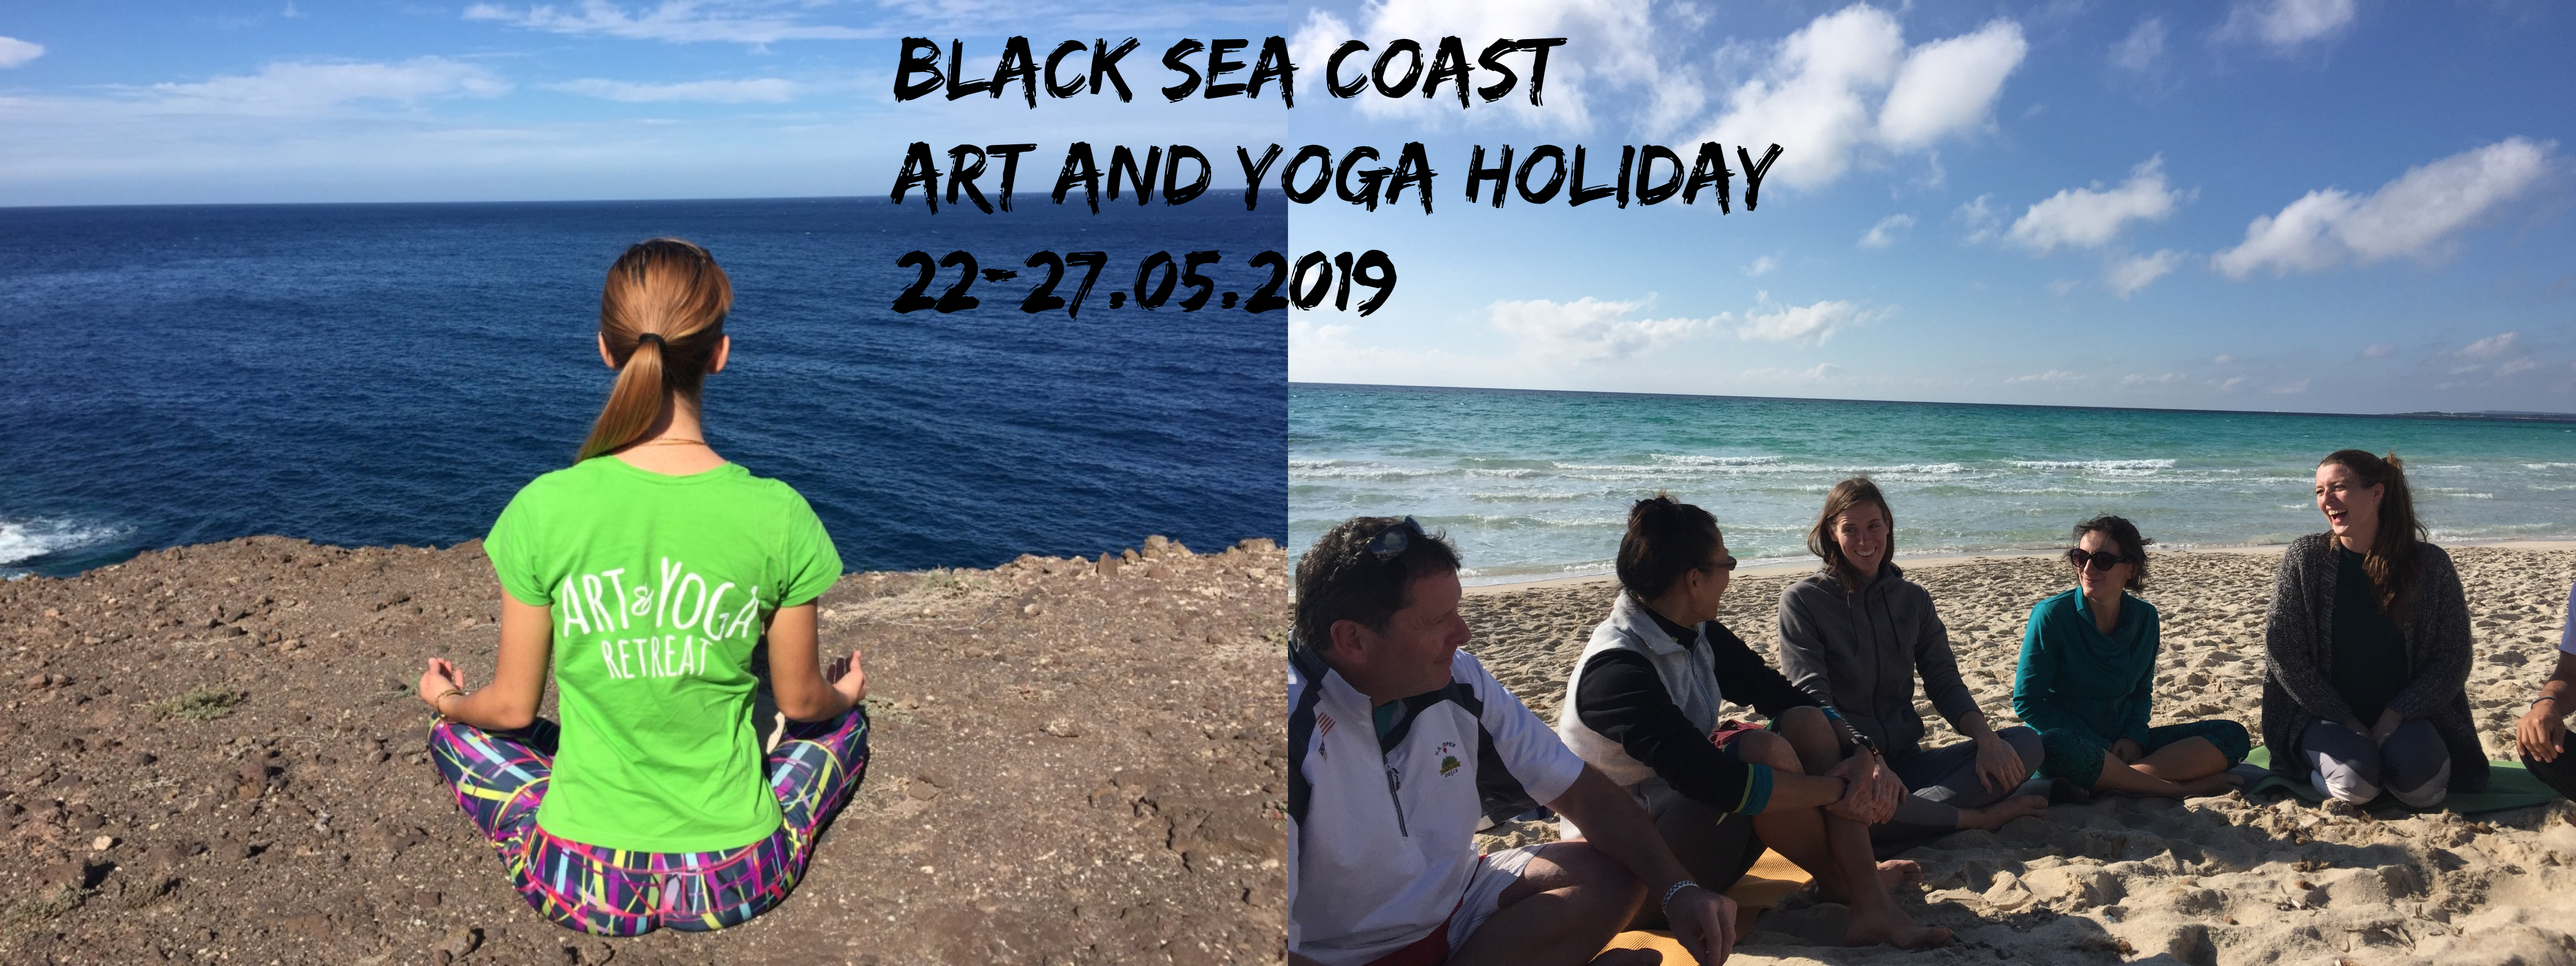 Black sea coast- vacation with yoga, mindfulness and art